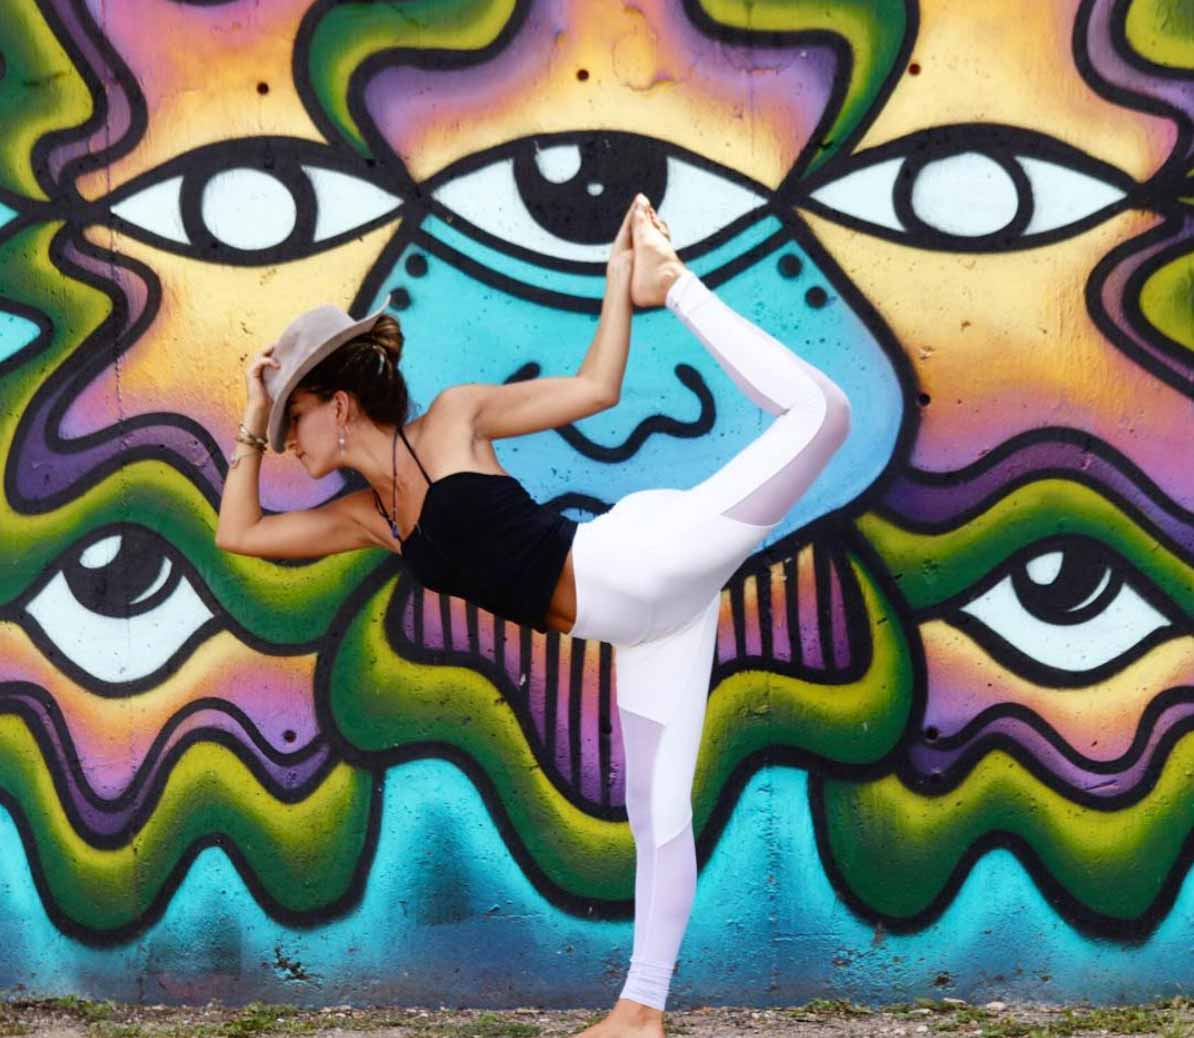 Loren Lotus _ Lotus Yoga Retreats _ GraffitiSeed.com  18.jpg